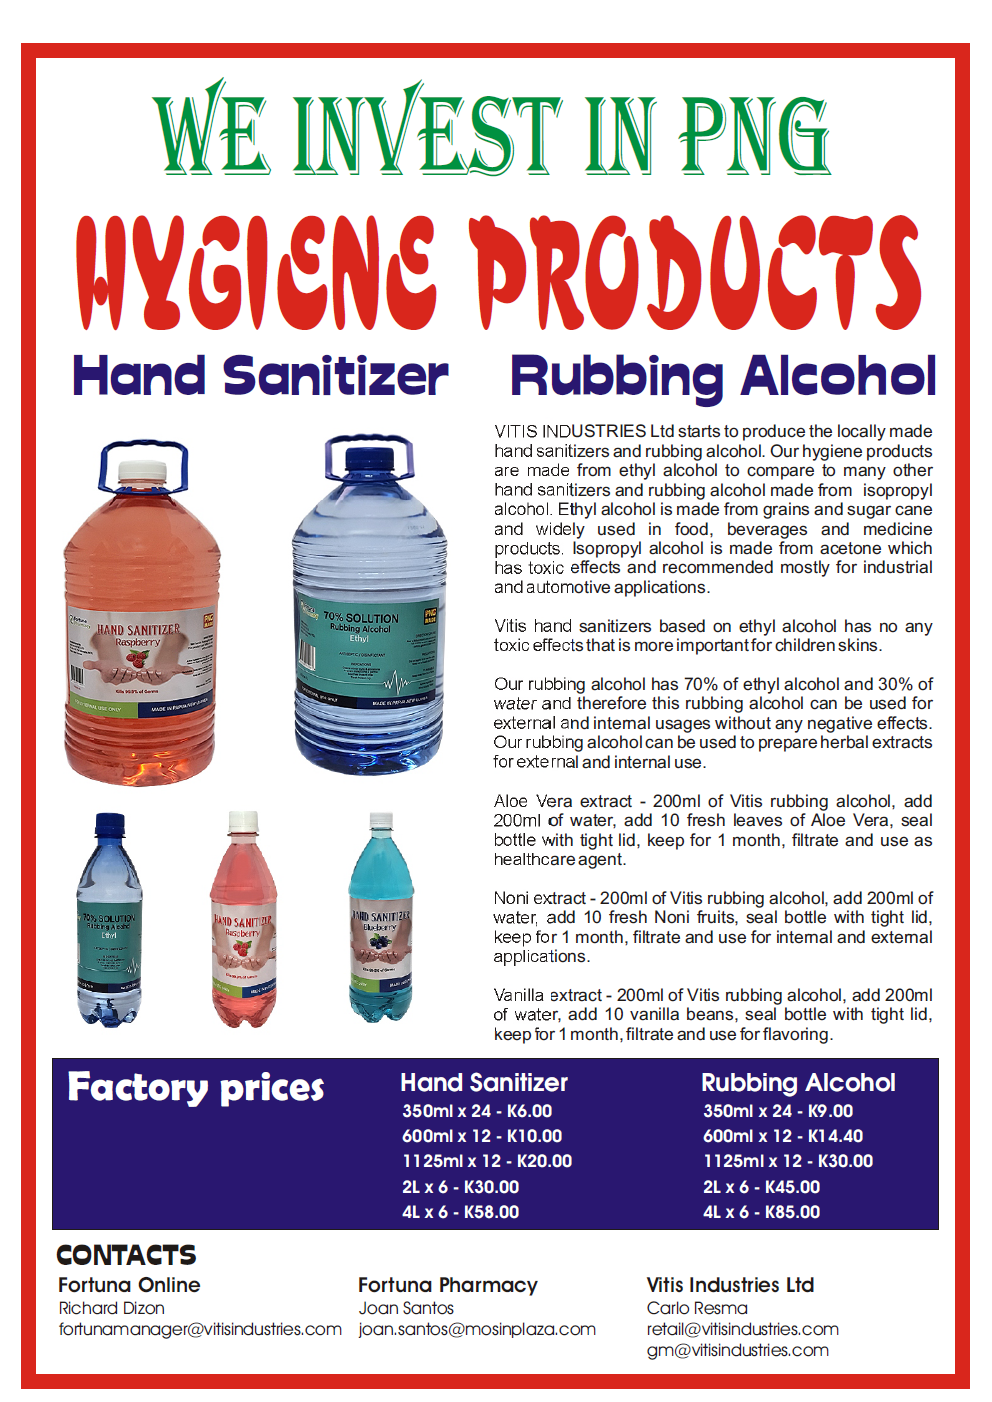 Hygiene Products : Hand Sanitizers and rubbing alcohols